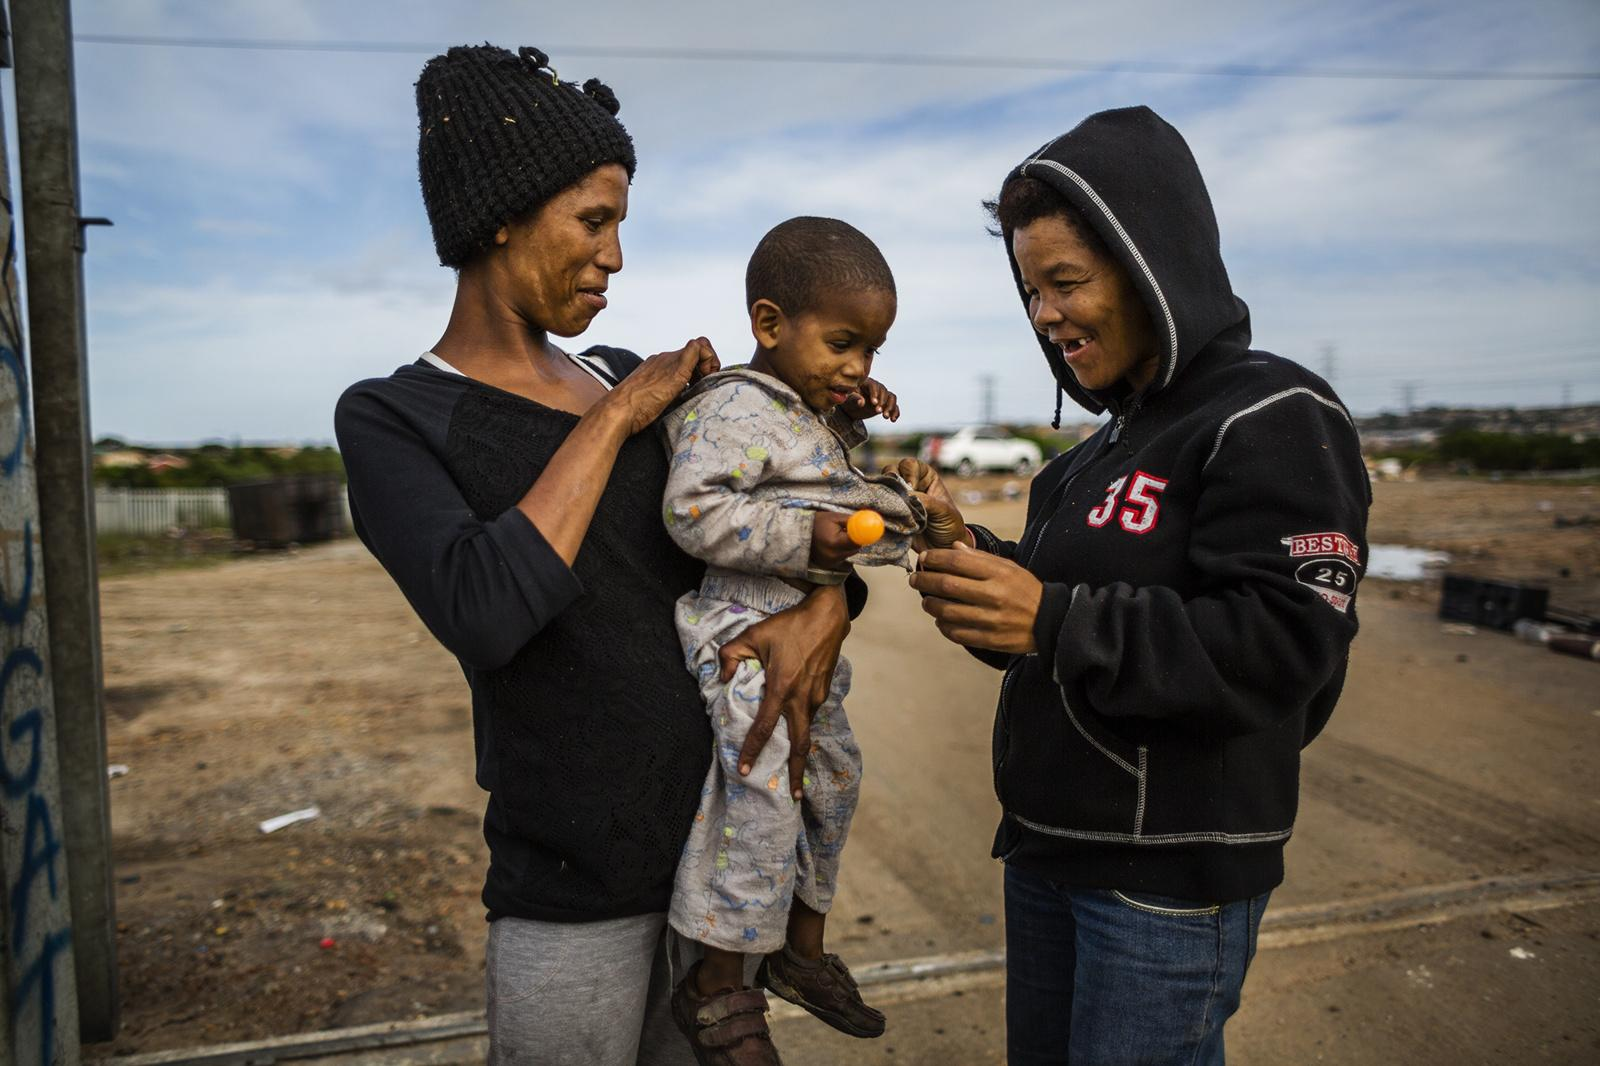 PORT ELIZABETH, SOUTH AFRICA - APRIL 06, 2015: A resident of a small community living next to a dumpsite holds her child in her arms while another resident sorts out items found in the garbage April 06, 2014 in Port Elizabeth, South Africa. The community makes their living by getting tipped helping unload people's cars and re-using or repairing items found on the dumpsite. Most of the people that stay at the dumpsite used to be associated with gangs and are now escaping this dangerous lifestyle. Many of them come from Helenvale, an area that is now home to approximately 21 gangs, hence nicknamed 'Katanga', after the war-stricken province of the Democratic Republic of Congo.